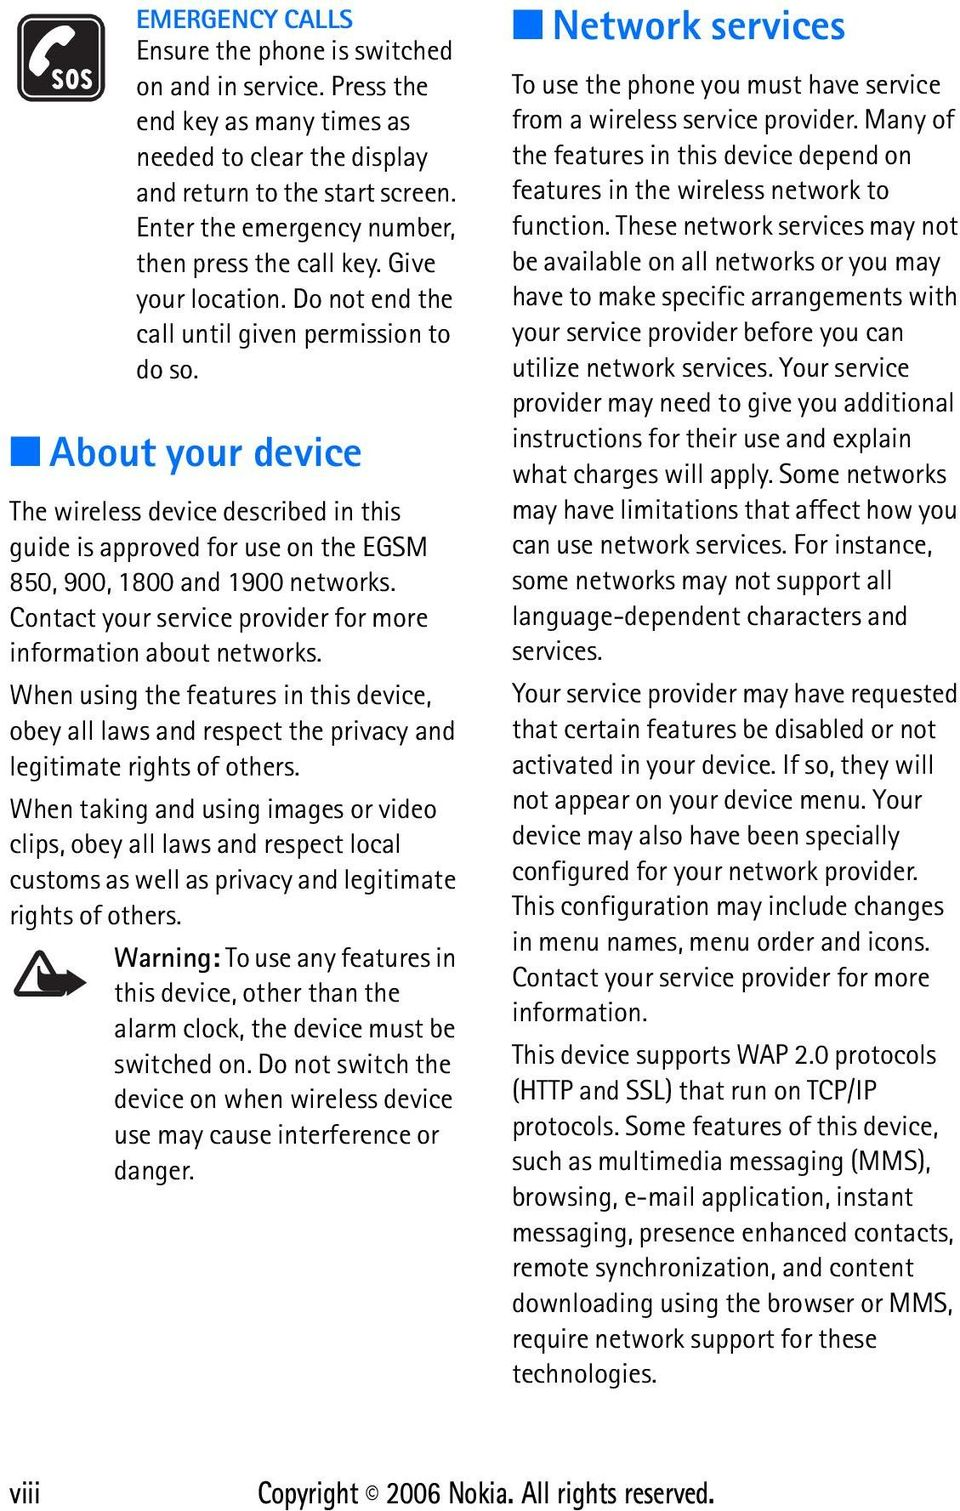 About your device The wireless device described in this guide is approved for use on the EGSM 850, 900, 1800 and 1900 networks. Contact your service provider for more information about networks.